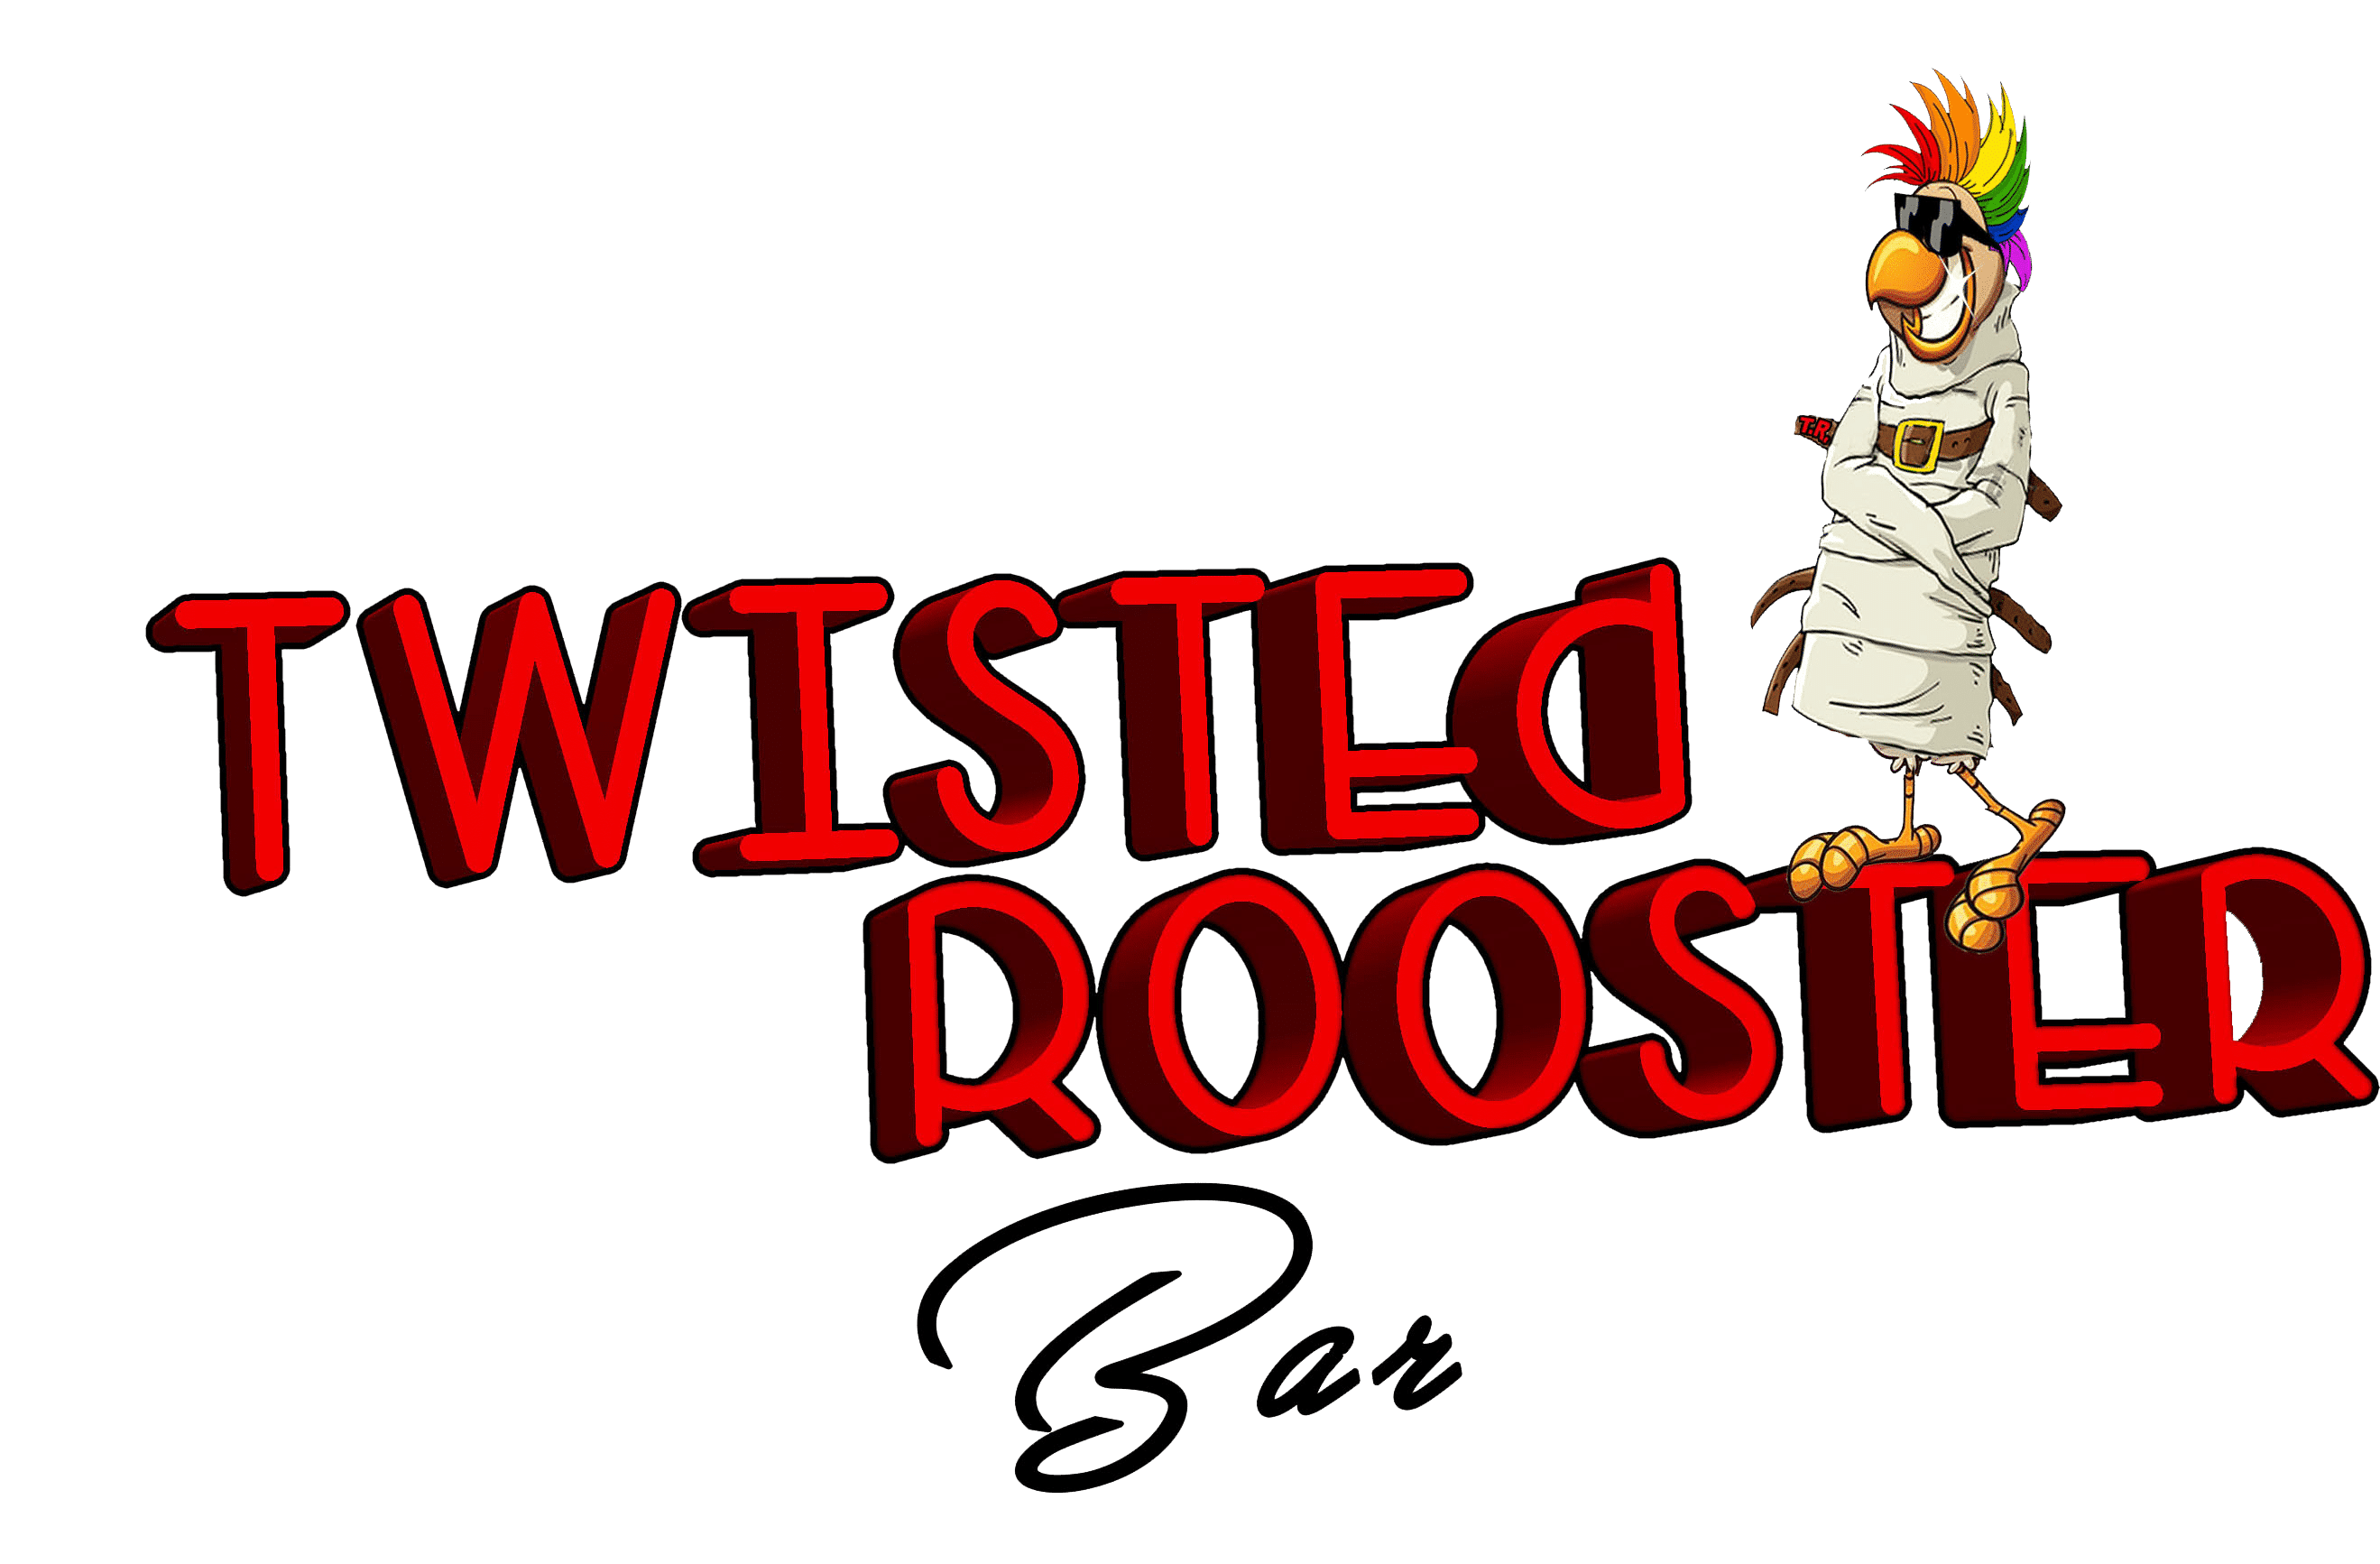 Twisted Rooster Bar